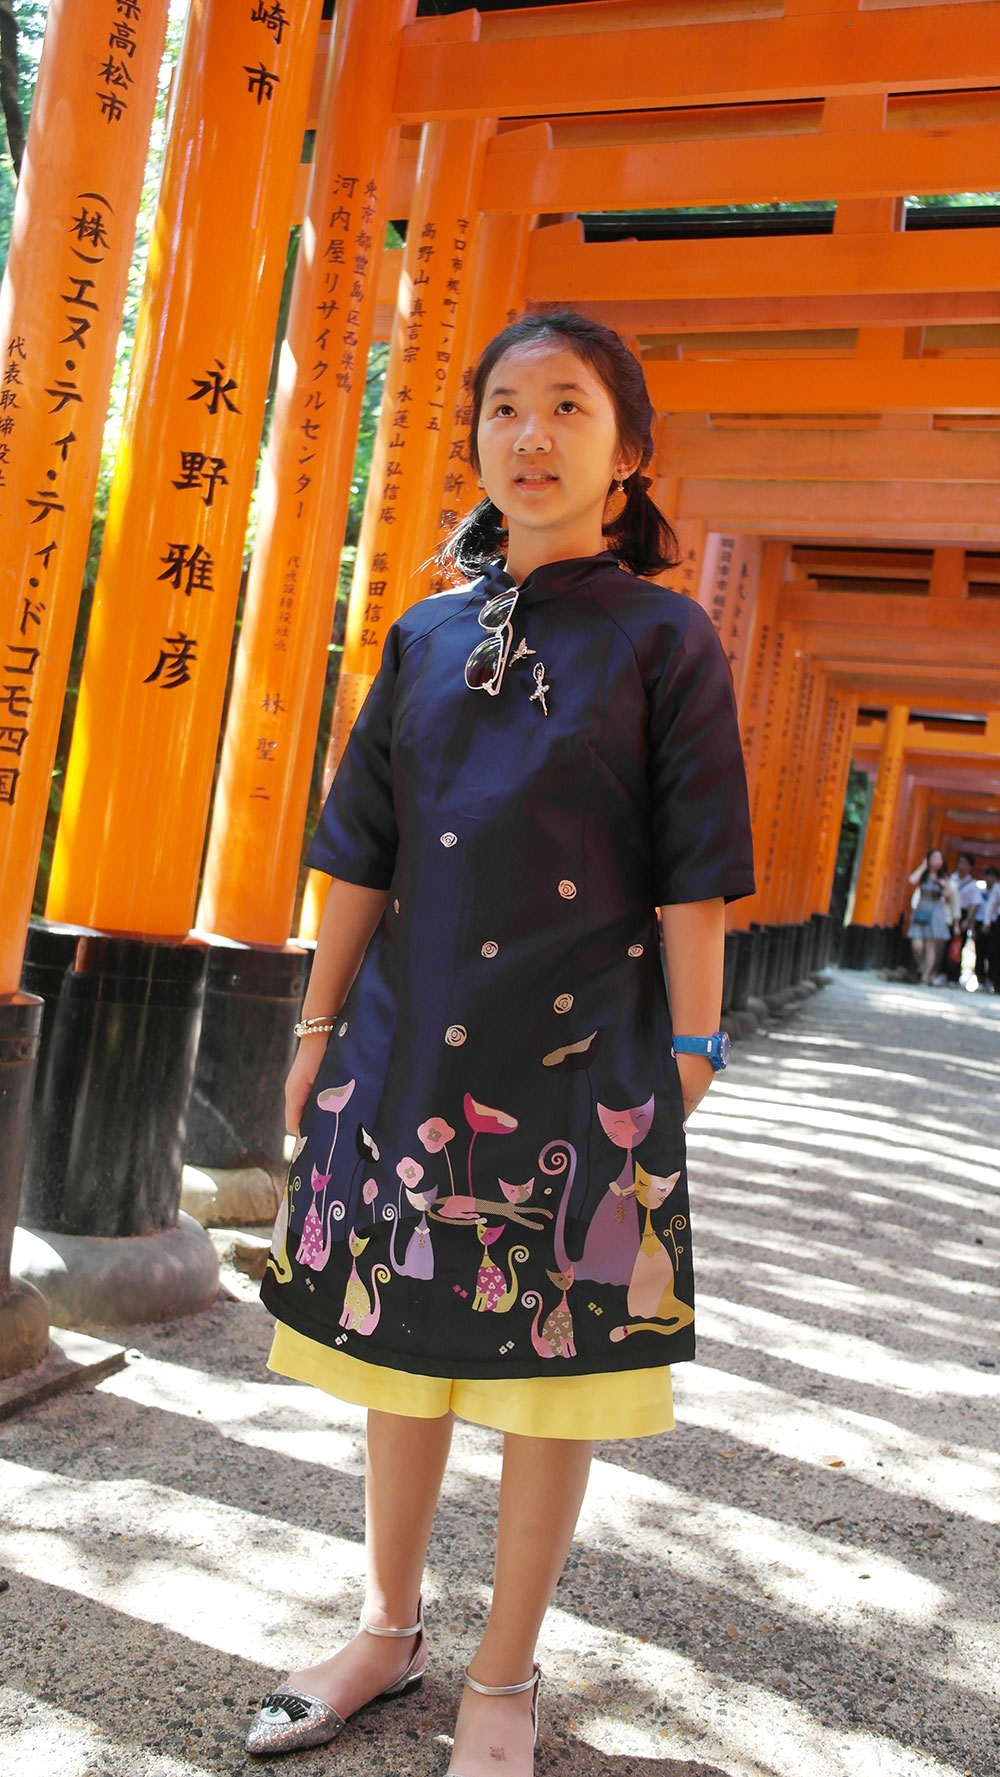 Fushimi-Inari-Shrine-54